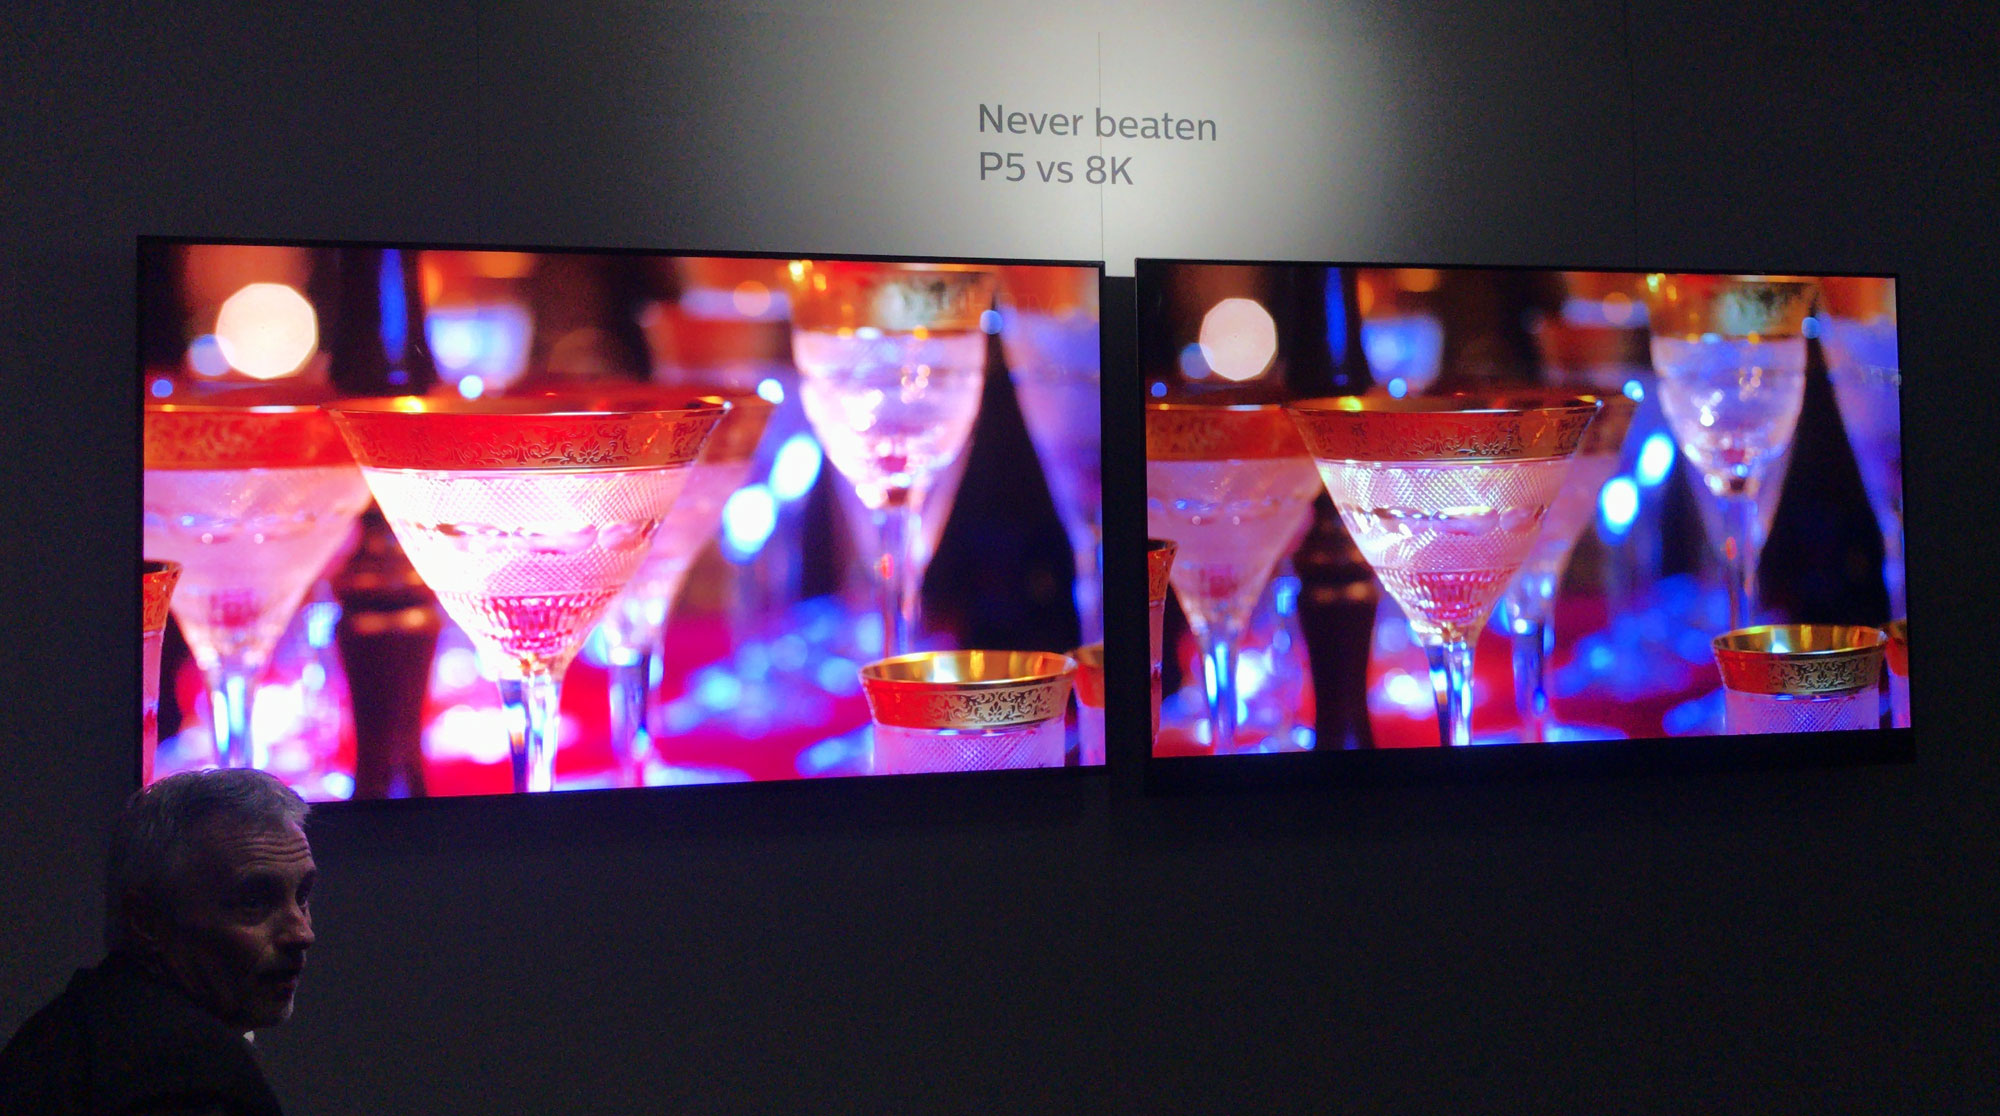 First look: Philips 2019 OLED & LCD TVs - FlatpanelsHD